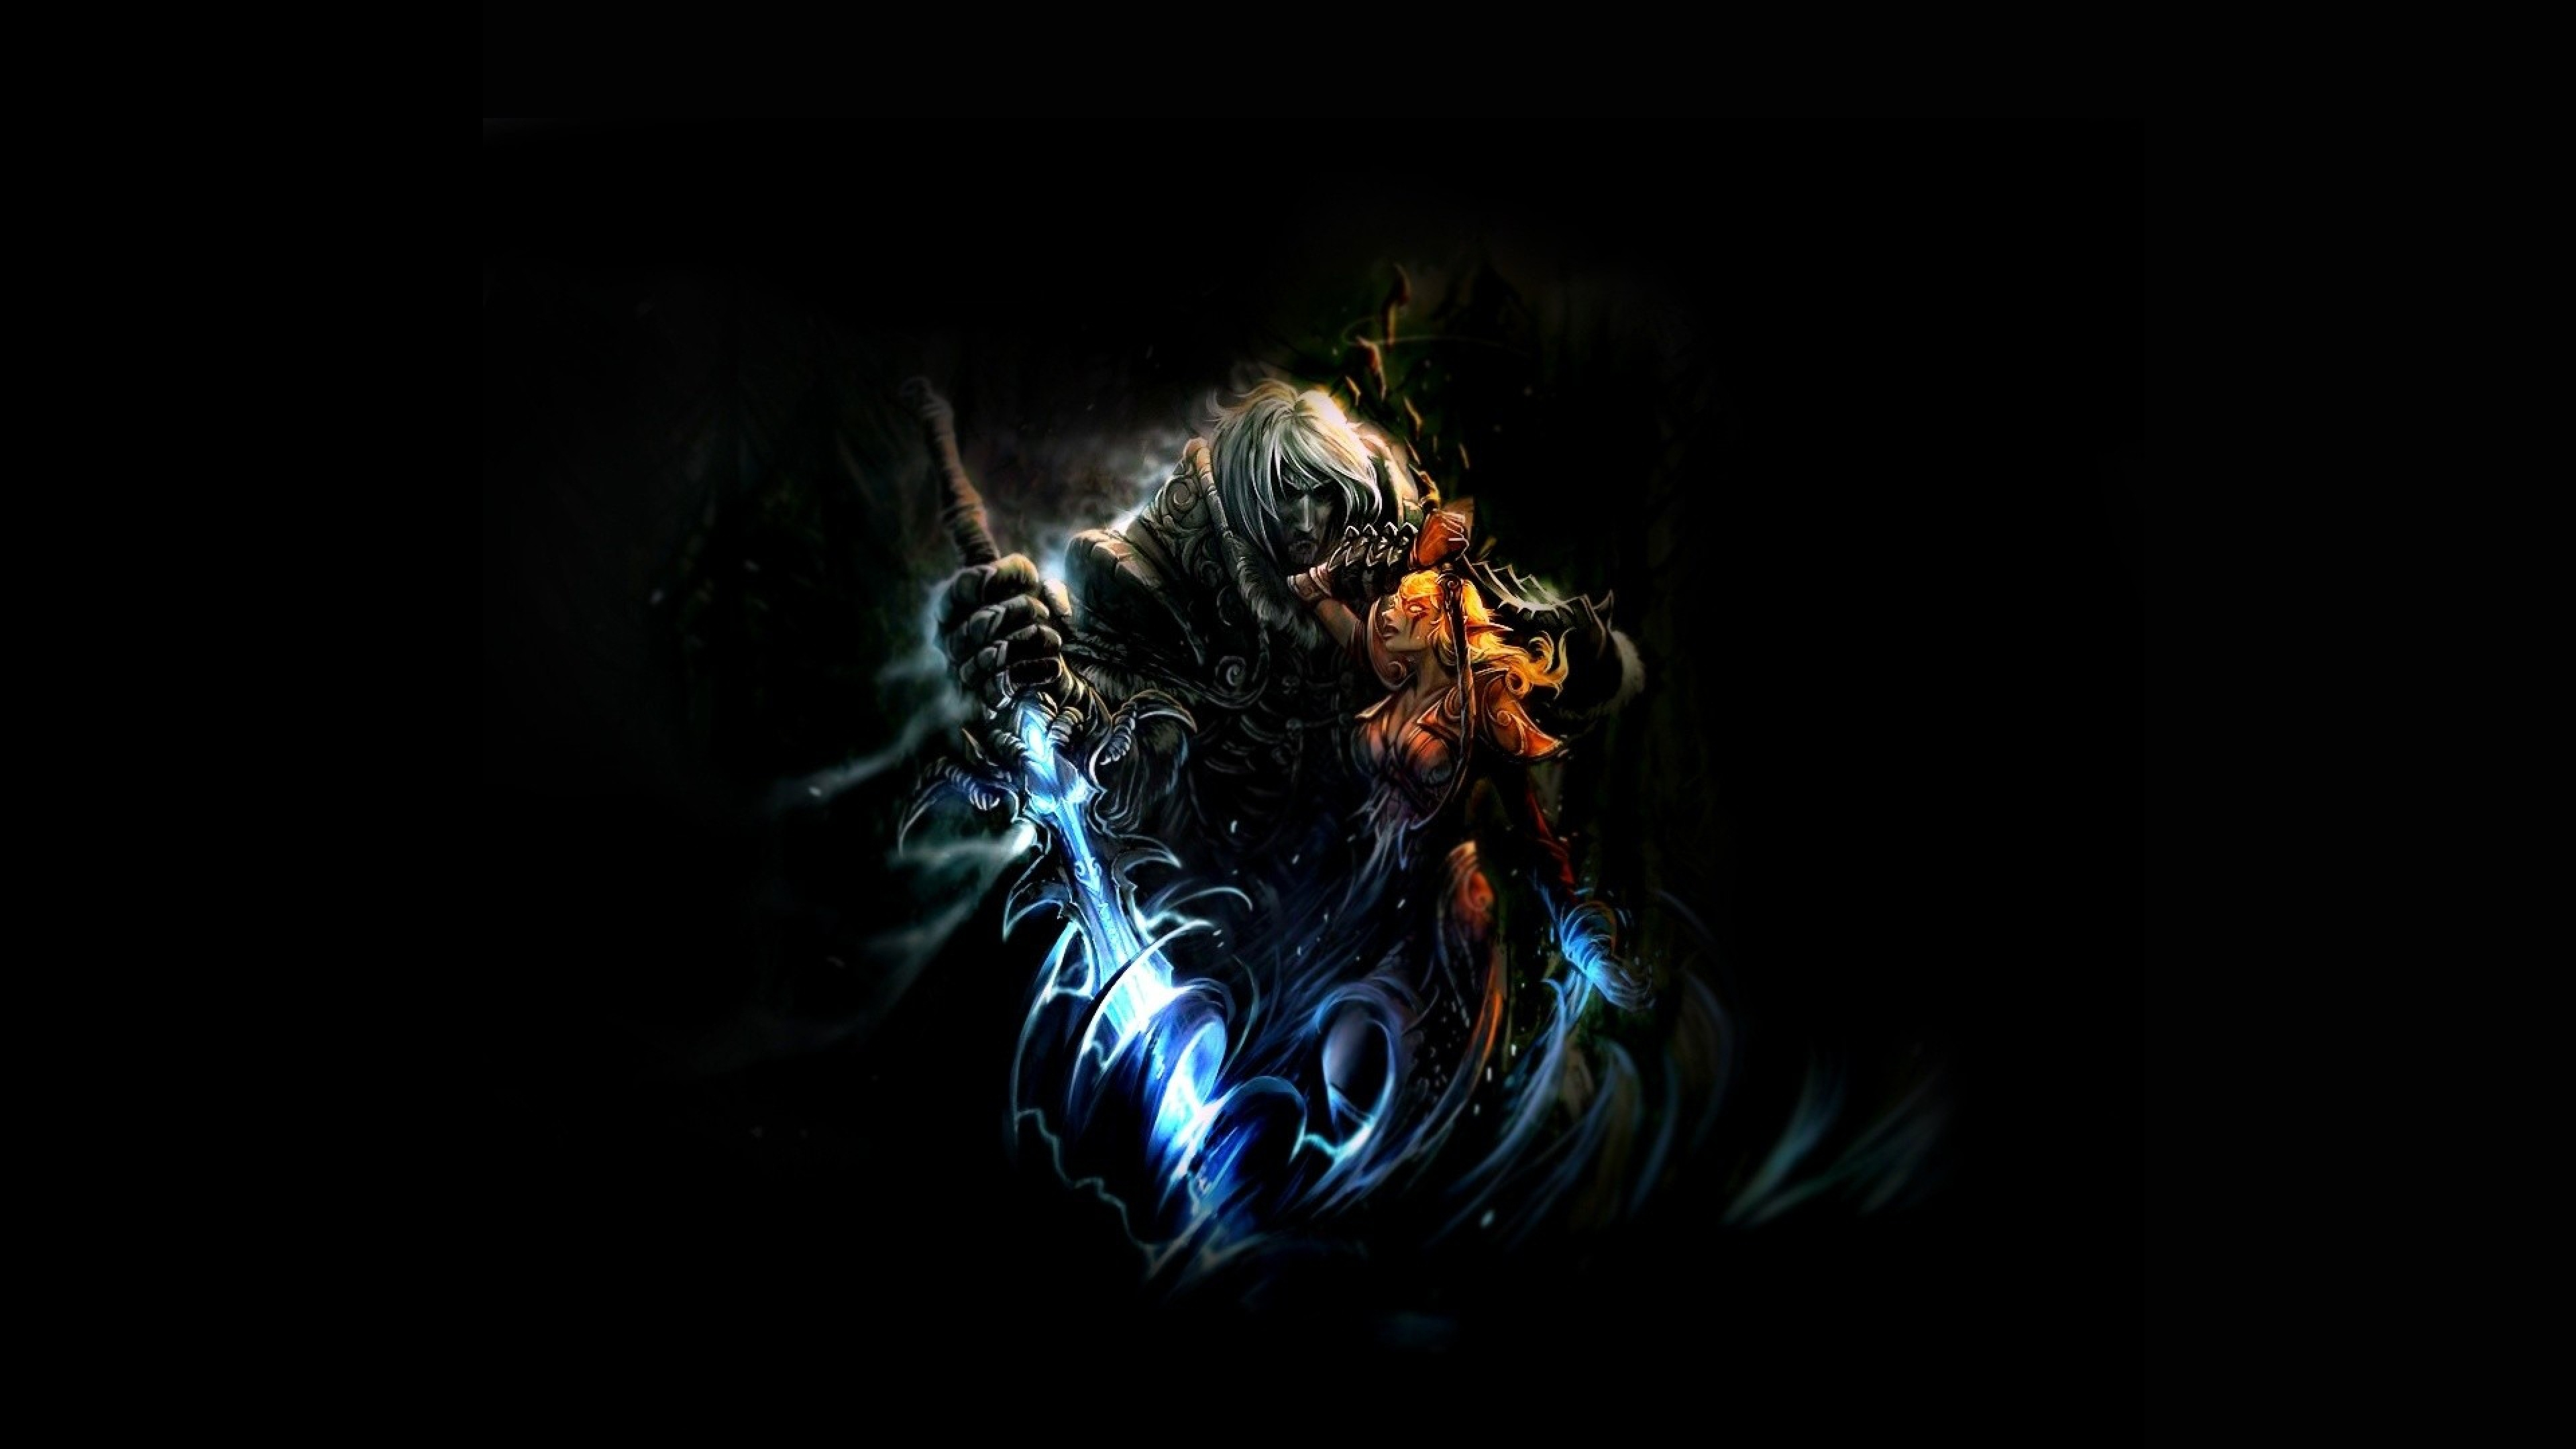 3840x2160 Wallpaper world of warcraft character background graphics 3840x2160